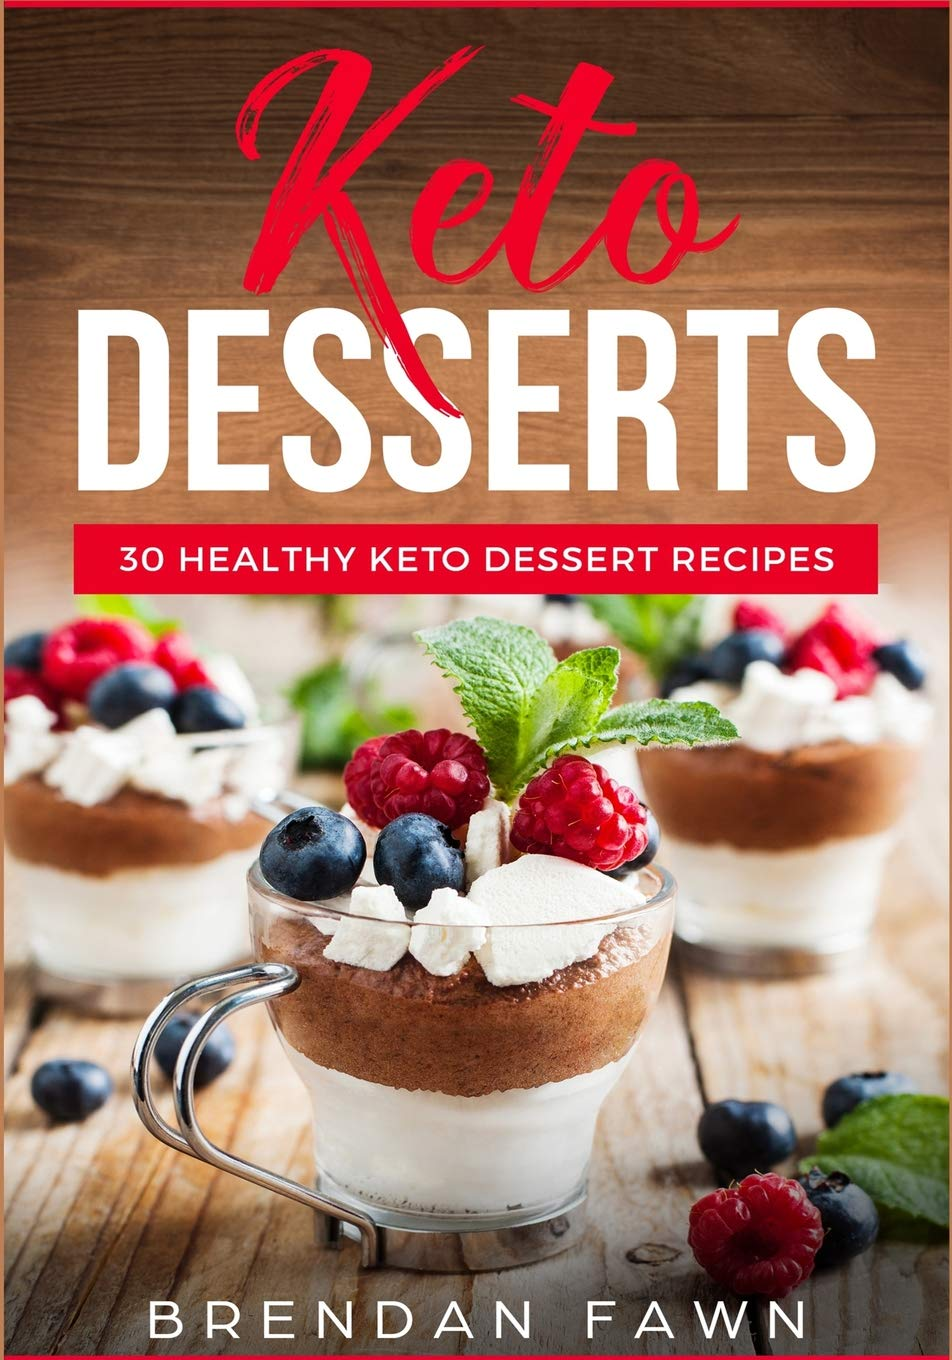 Keto-Friendly Dessert Recipes Warranty Service Request